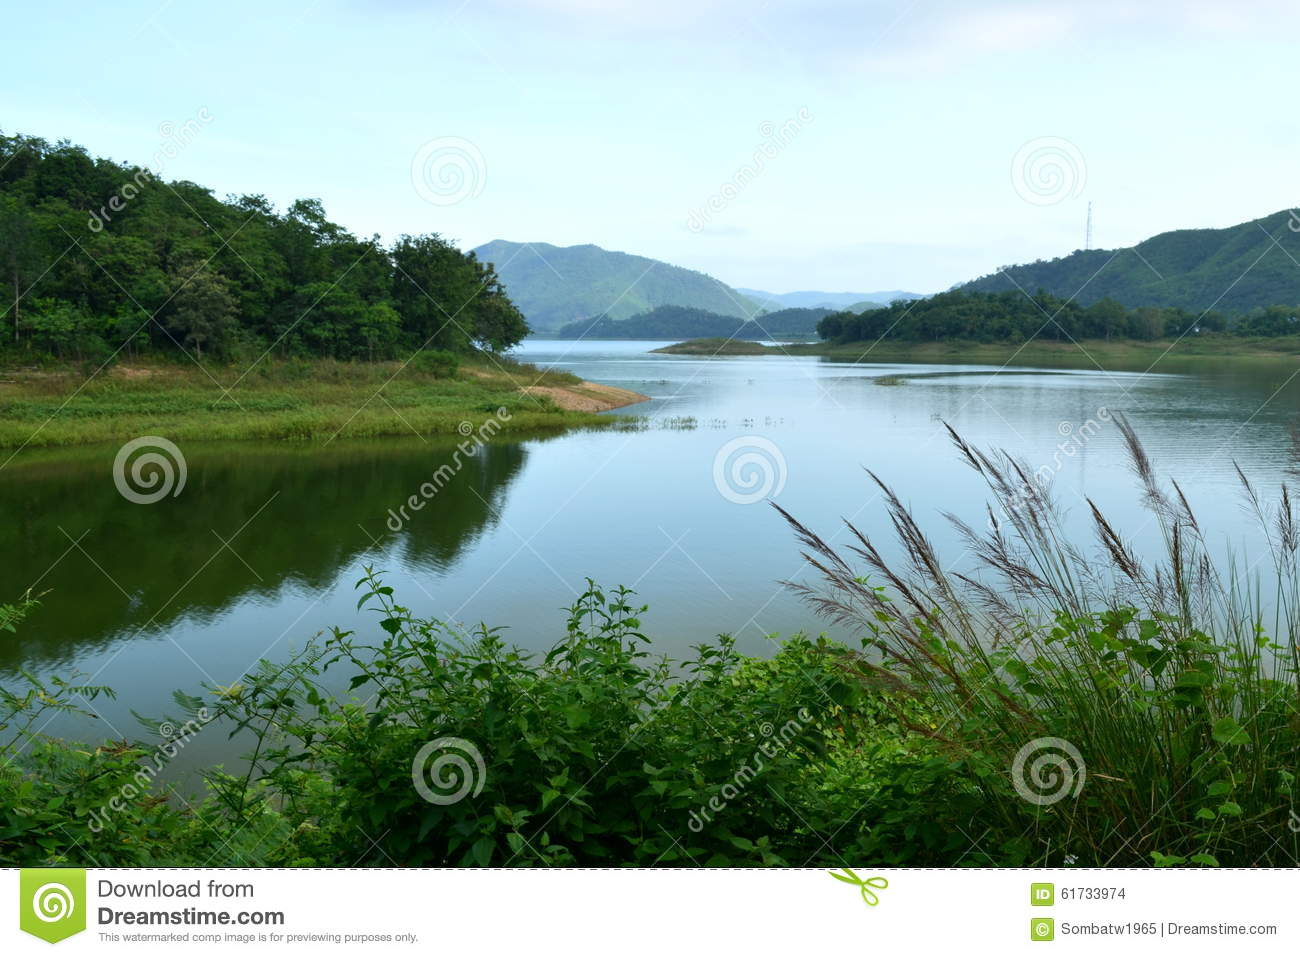 Reservoir In Rainy Season Stock Photo - Image: 61733974